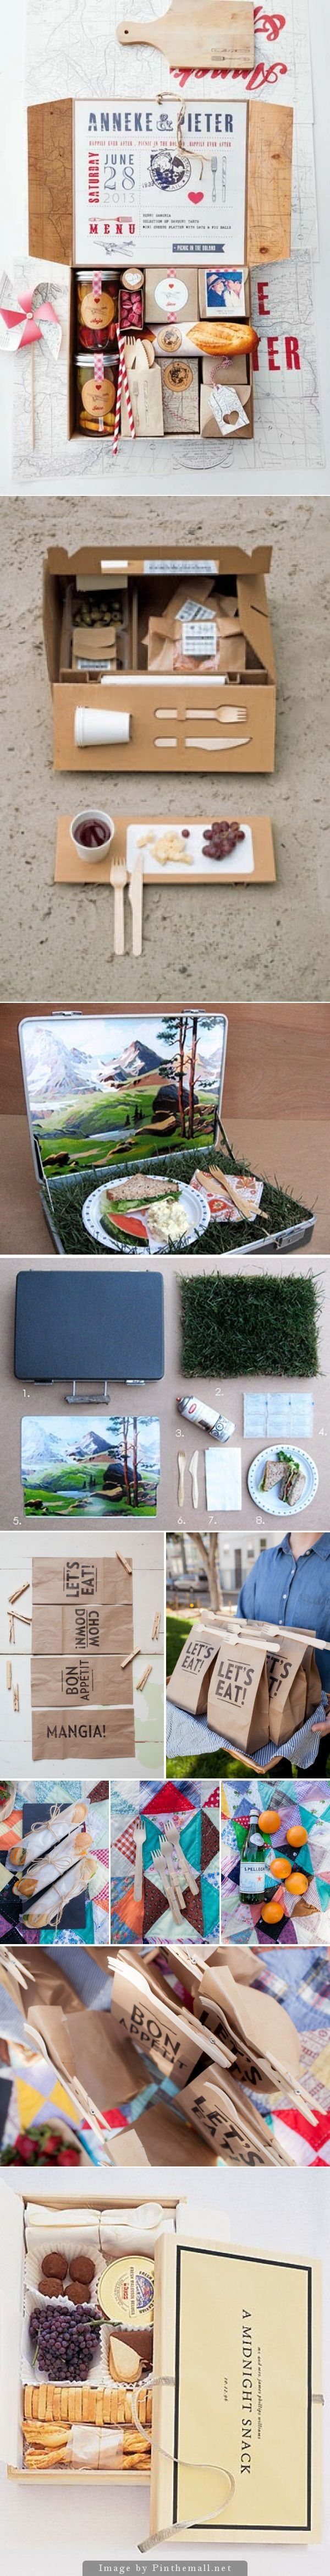 Here you go lets go on a picnic packaging curated via Packaging Diva PD from my Pinterest boards created via http://pinterest.com/packagingdiva